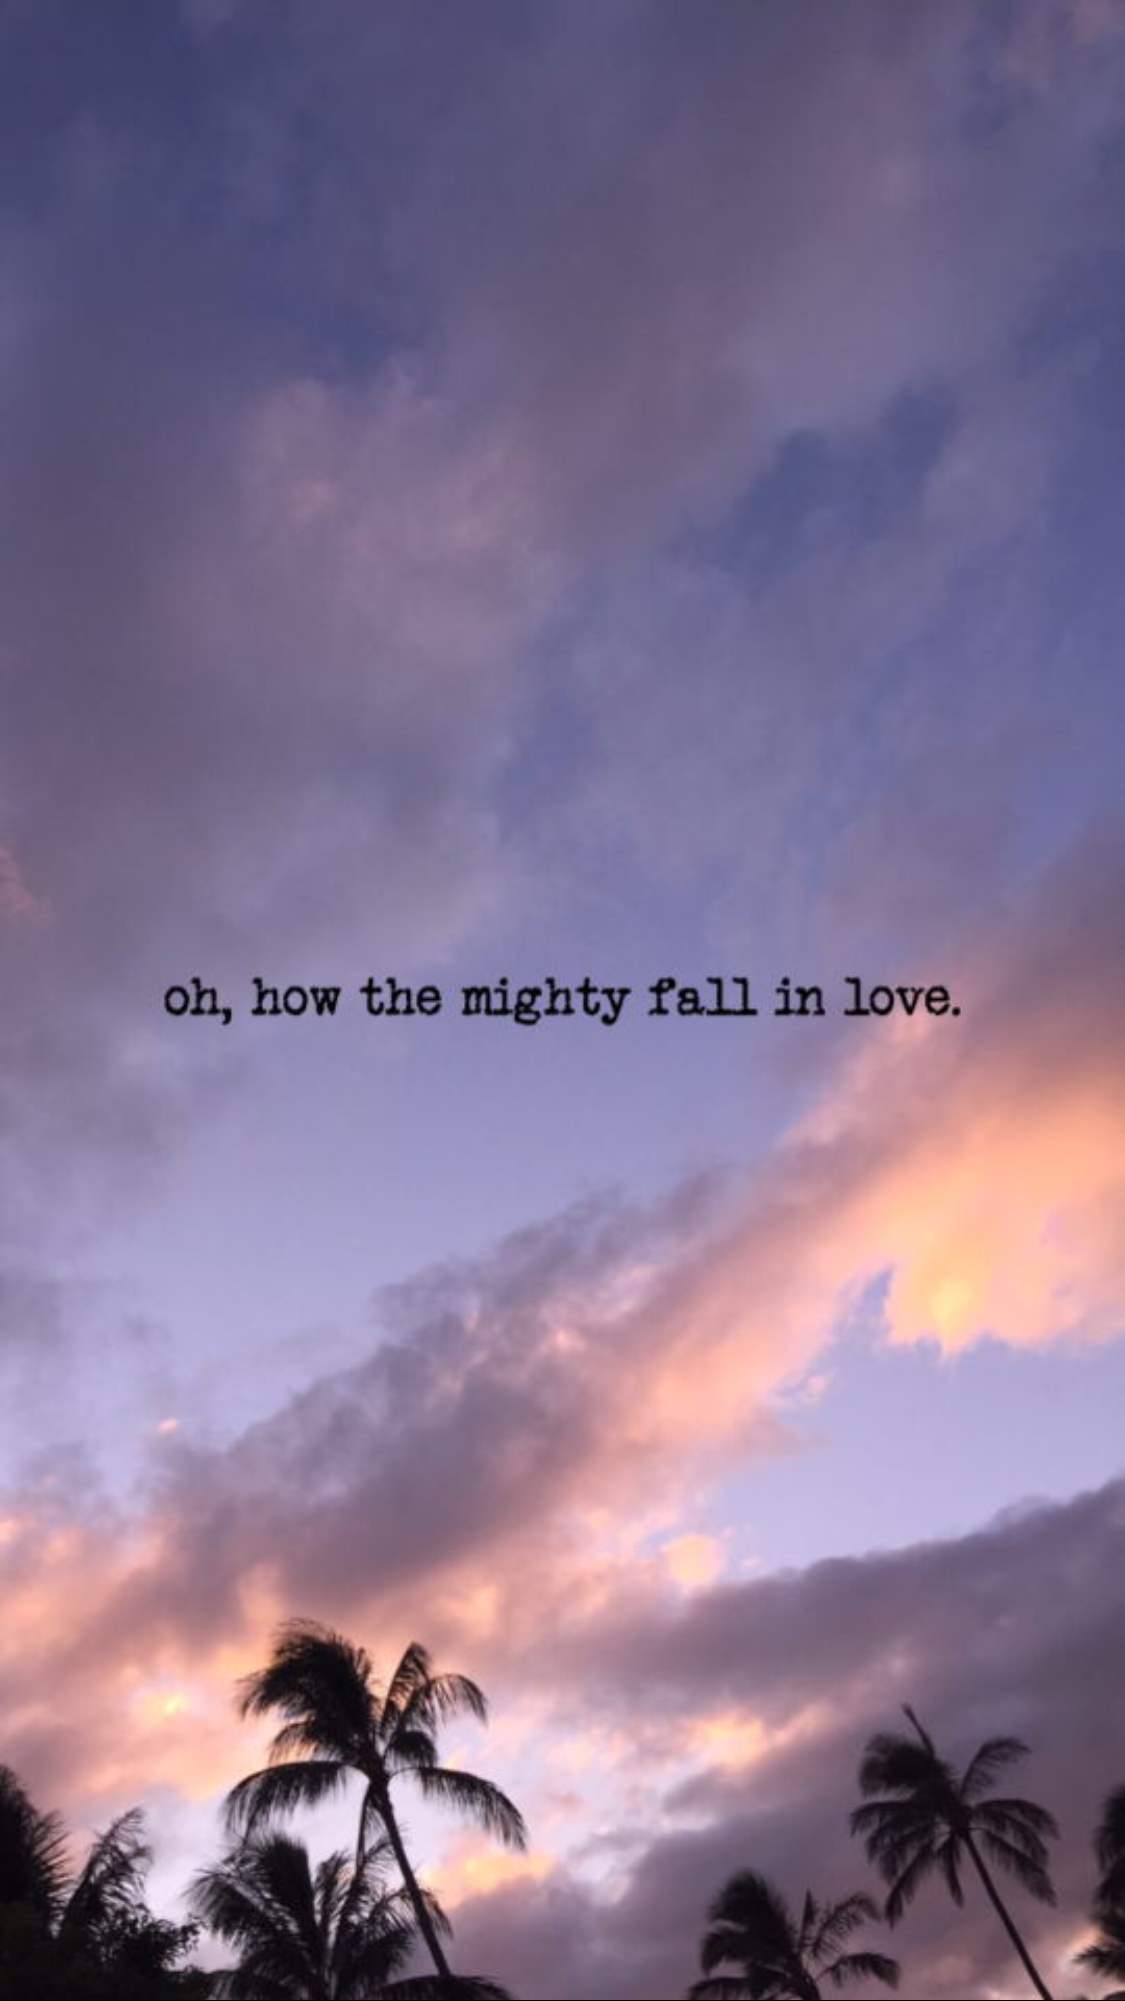 Pin by Harris on Fall Out Boy♡♥♡♥♡ | Fall out boy wallpaper, Fall out boy  lyrics, Fall wallpaper